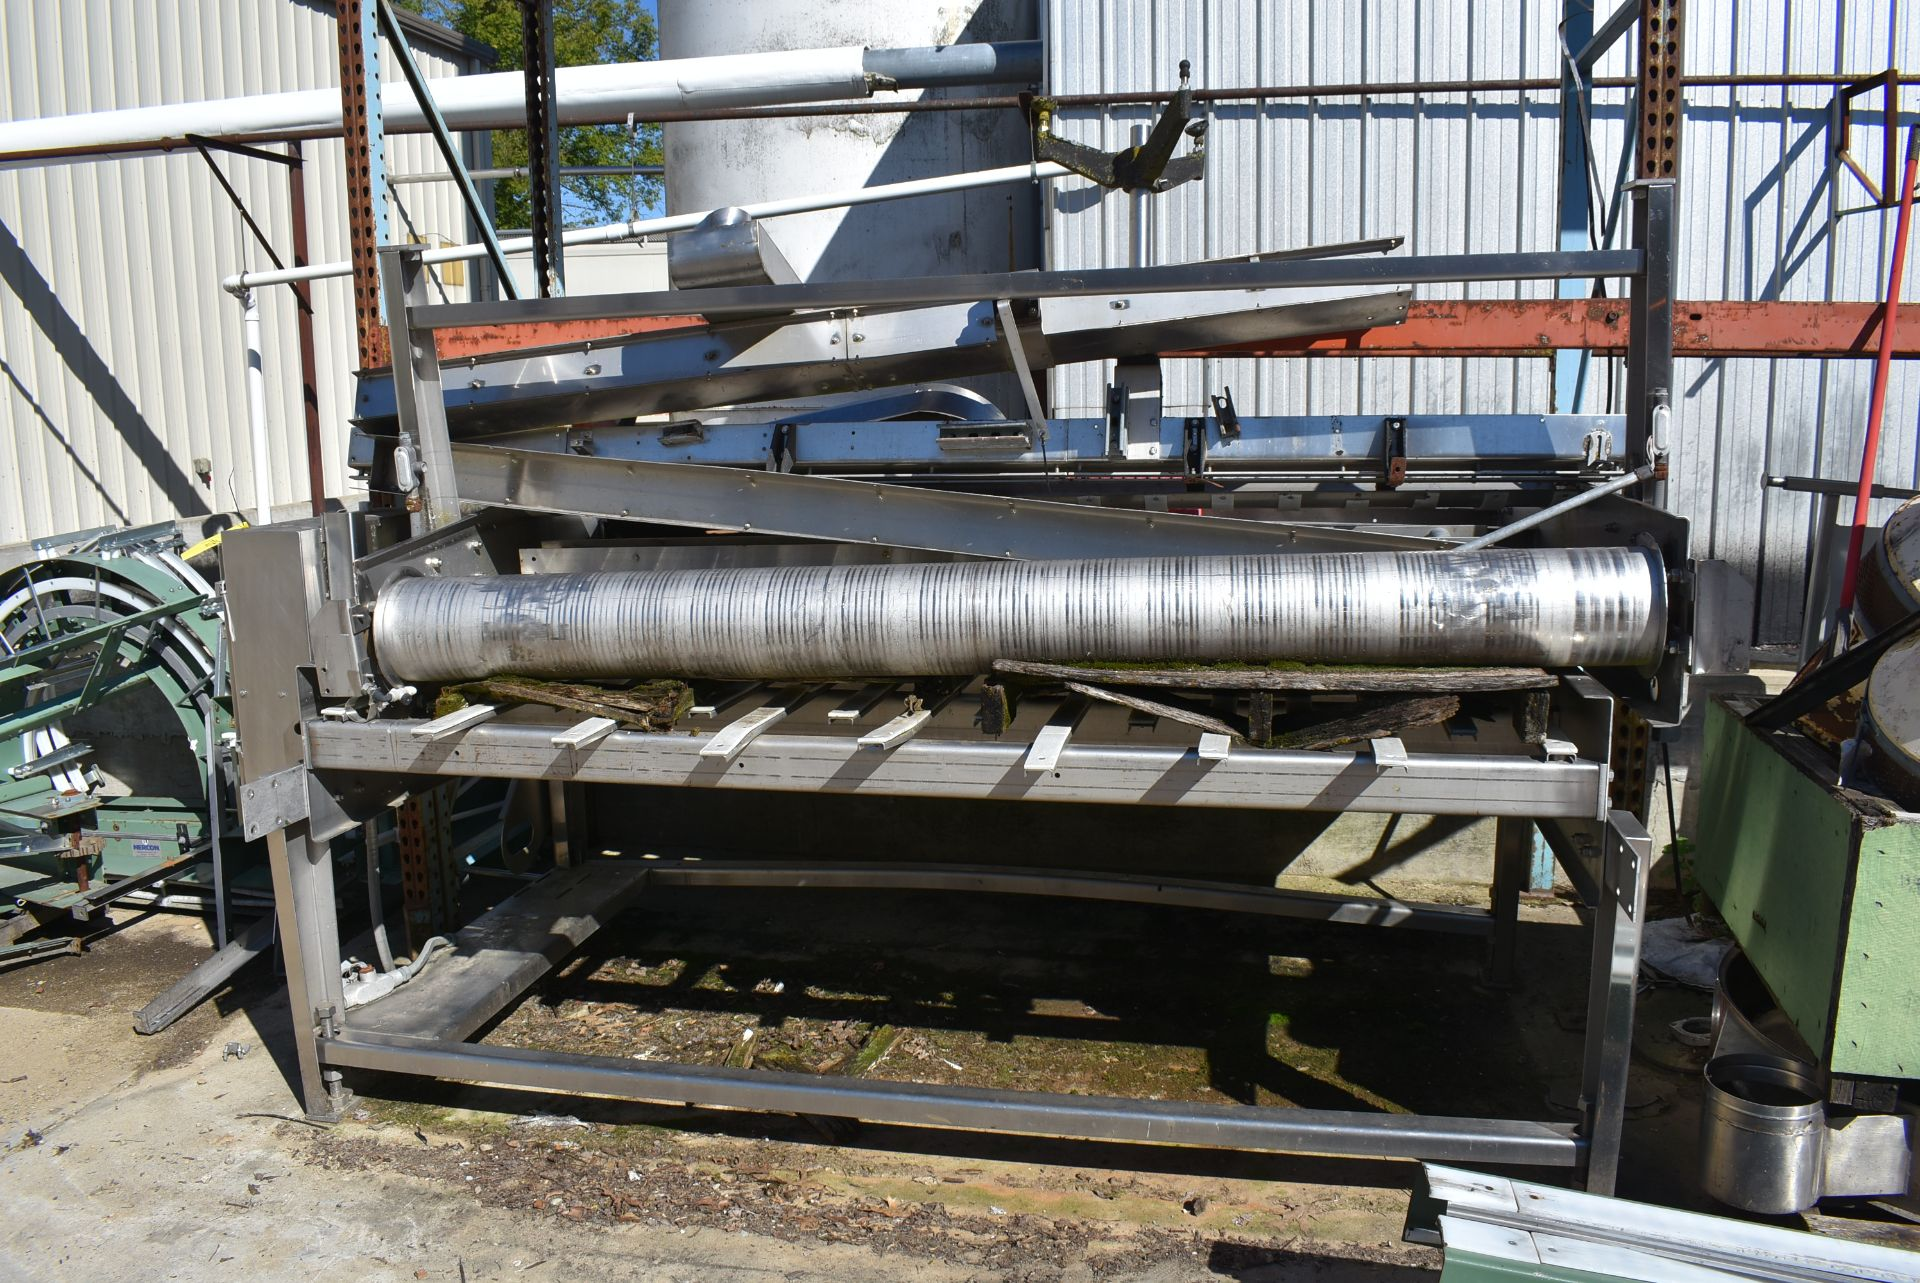 Stainless Steel Accumulation Table, 8' Length